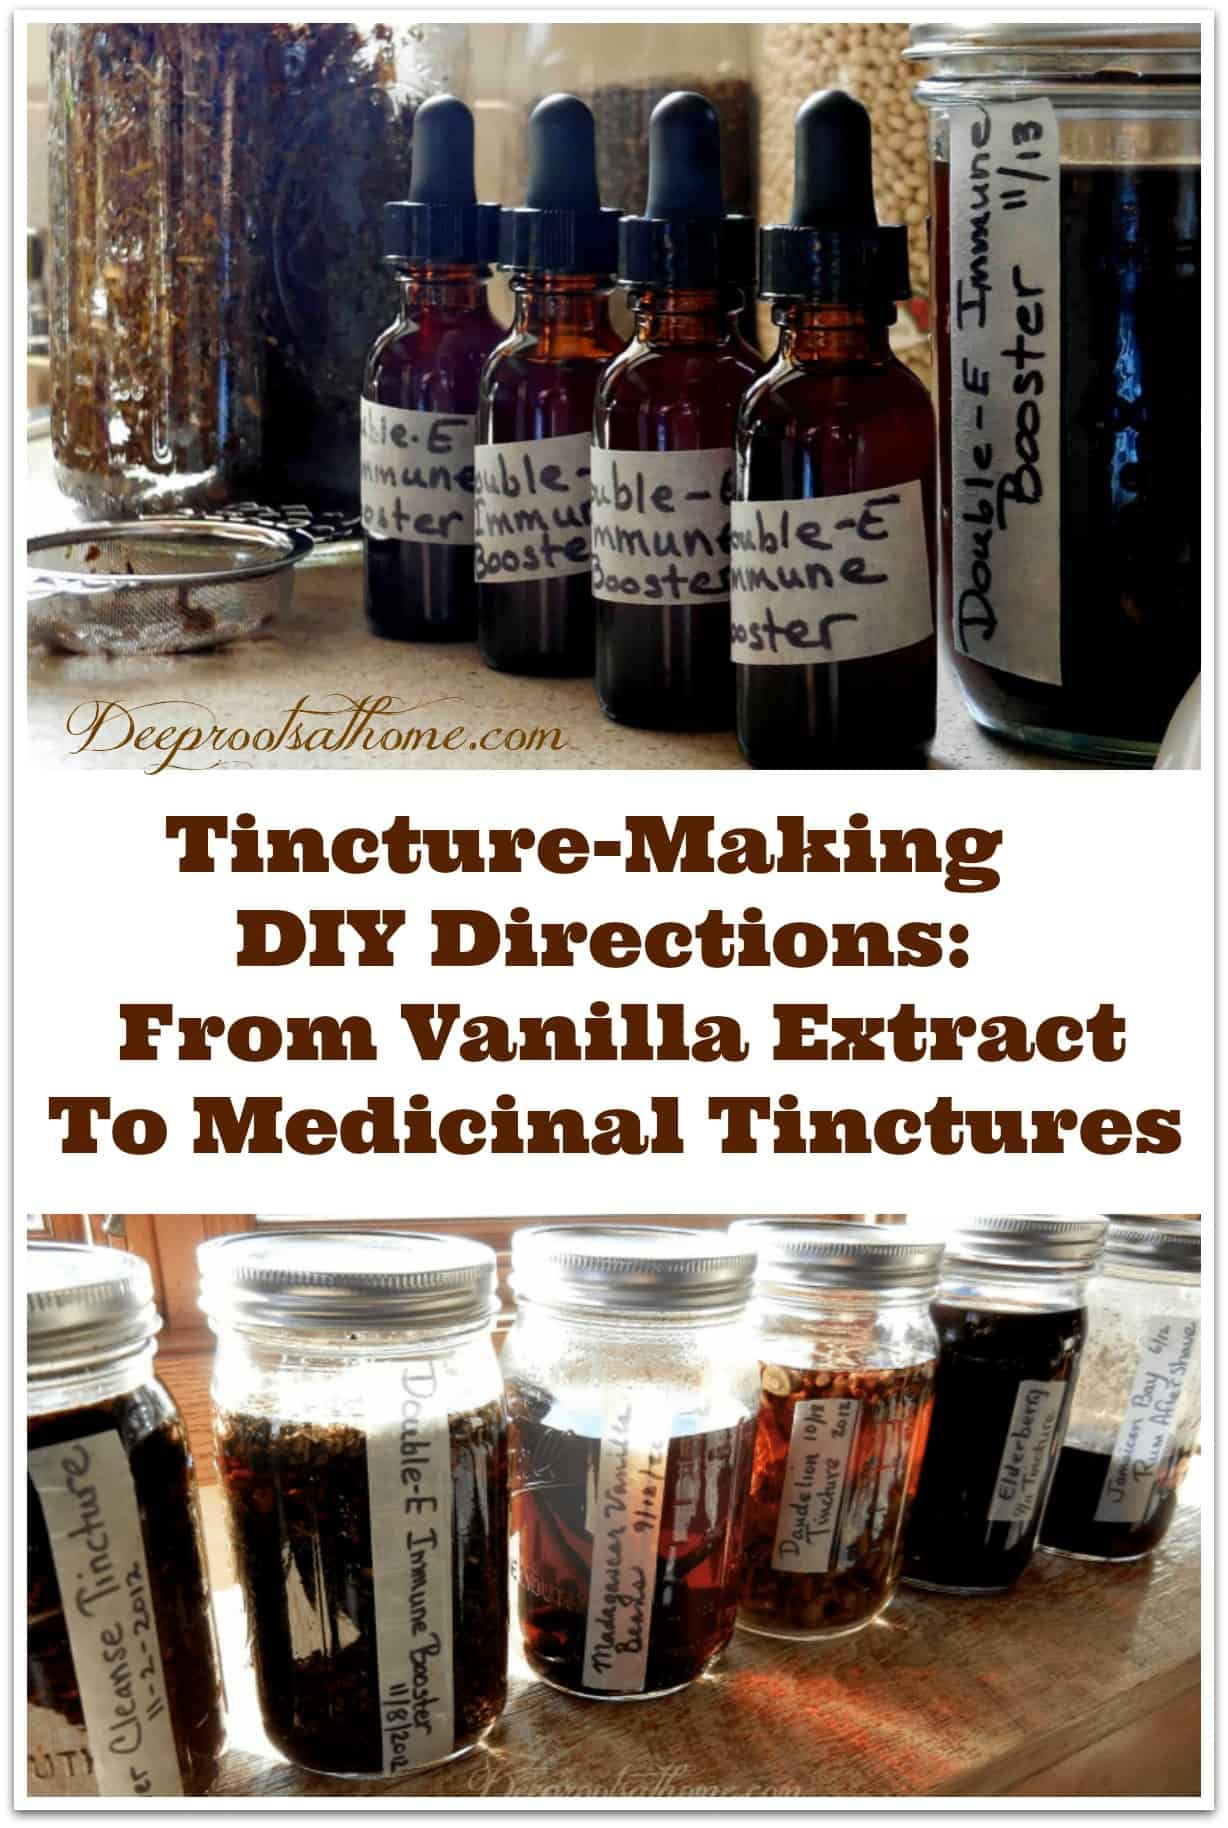 Tincture Making Directions: From Vanilla Extract To Medicinal Tinctures. Bottles and jars of finished tinctures.